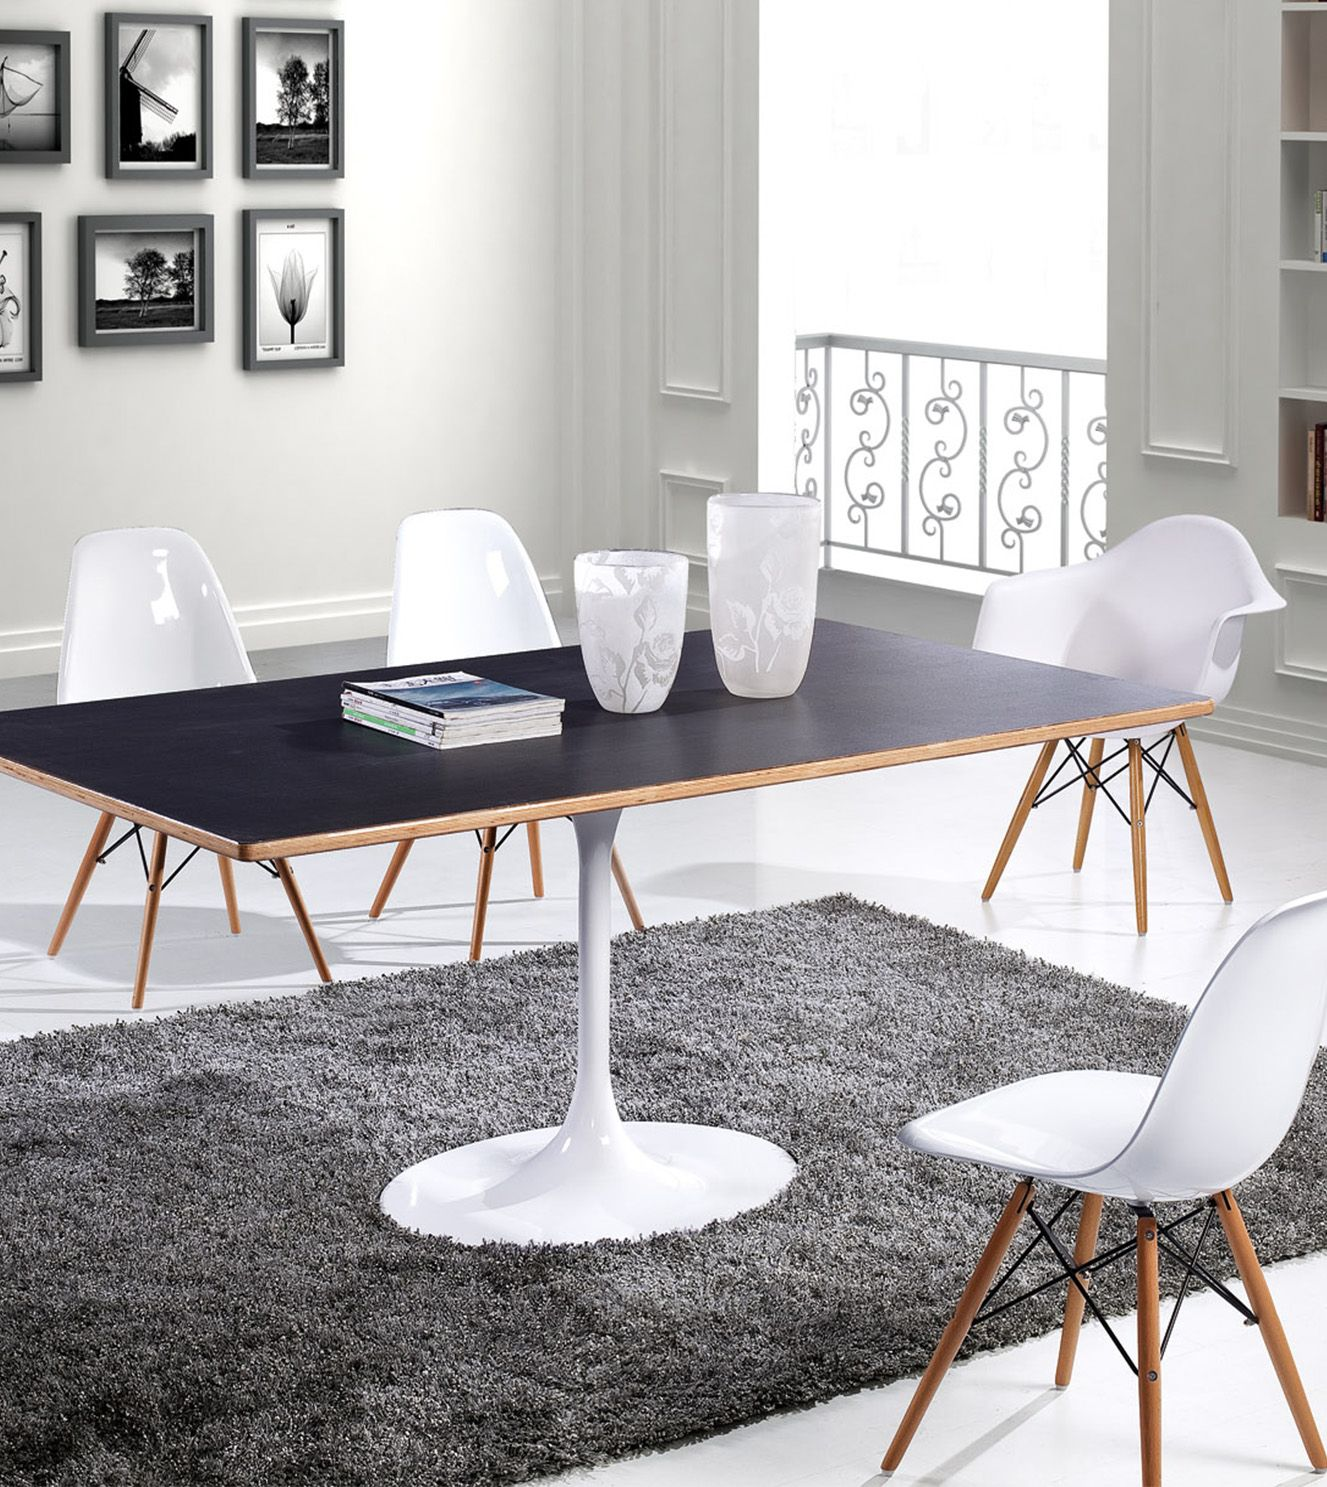 Office Furniture With Modern Clean Lines   Perfect For Breakout Meeting  Areas. Table And Chairs